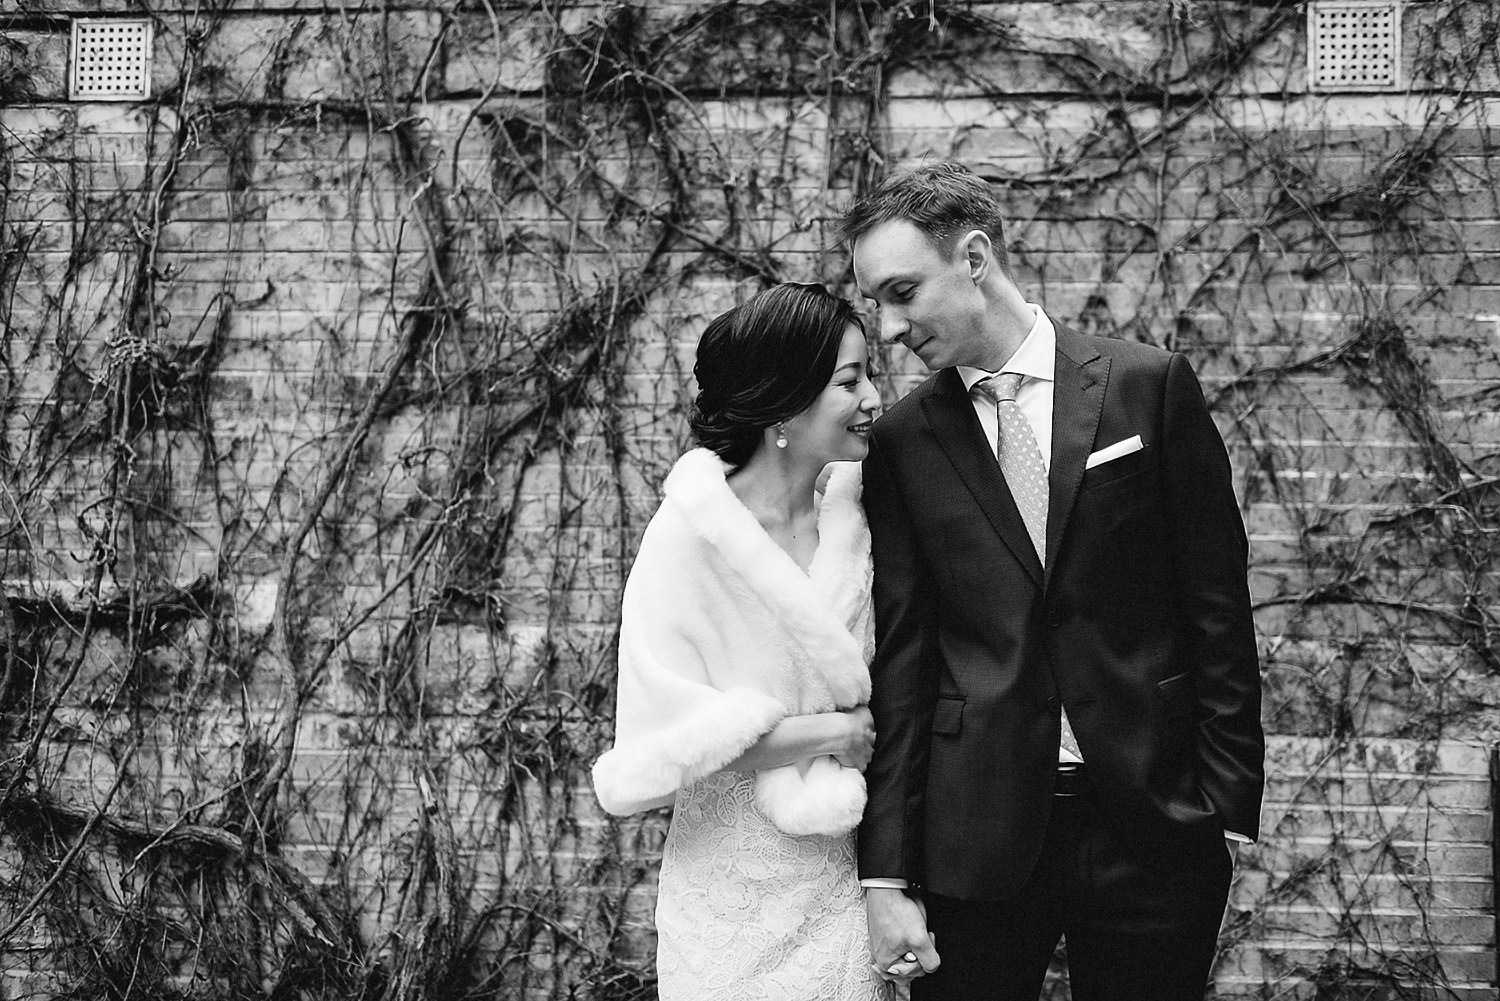 Best-Wedding-Photographers-Toronto_-Urban-City-Wedding-Photography-Downtown-Toronto-Photographer_Vintage-Bride-and-Groom-Details_The-Chase-Wedding-Venue_Candid-Photojournalistic-Documentary-Style-Toronto-Cloud-Gardens-Downtown-City_Minimalism.jpg